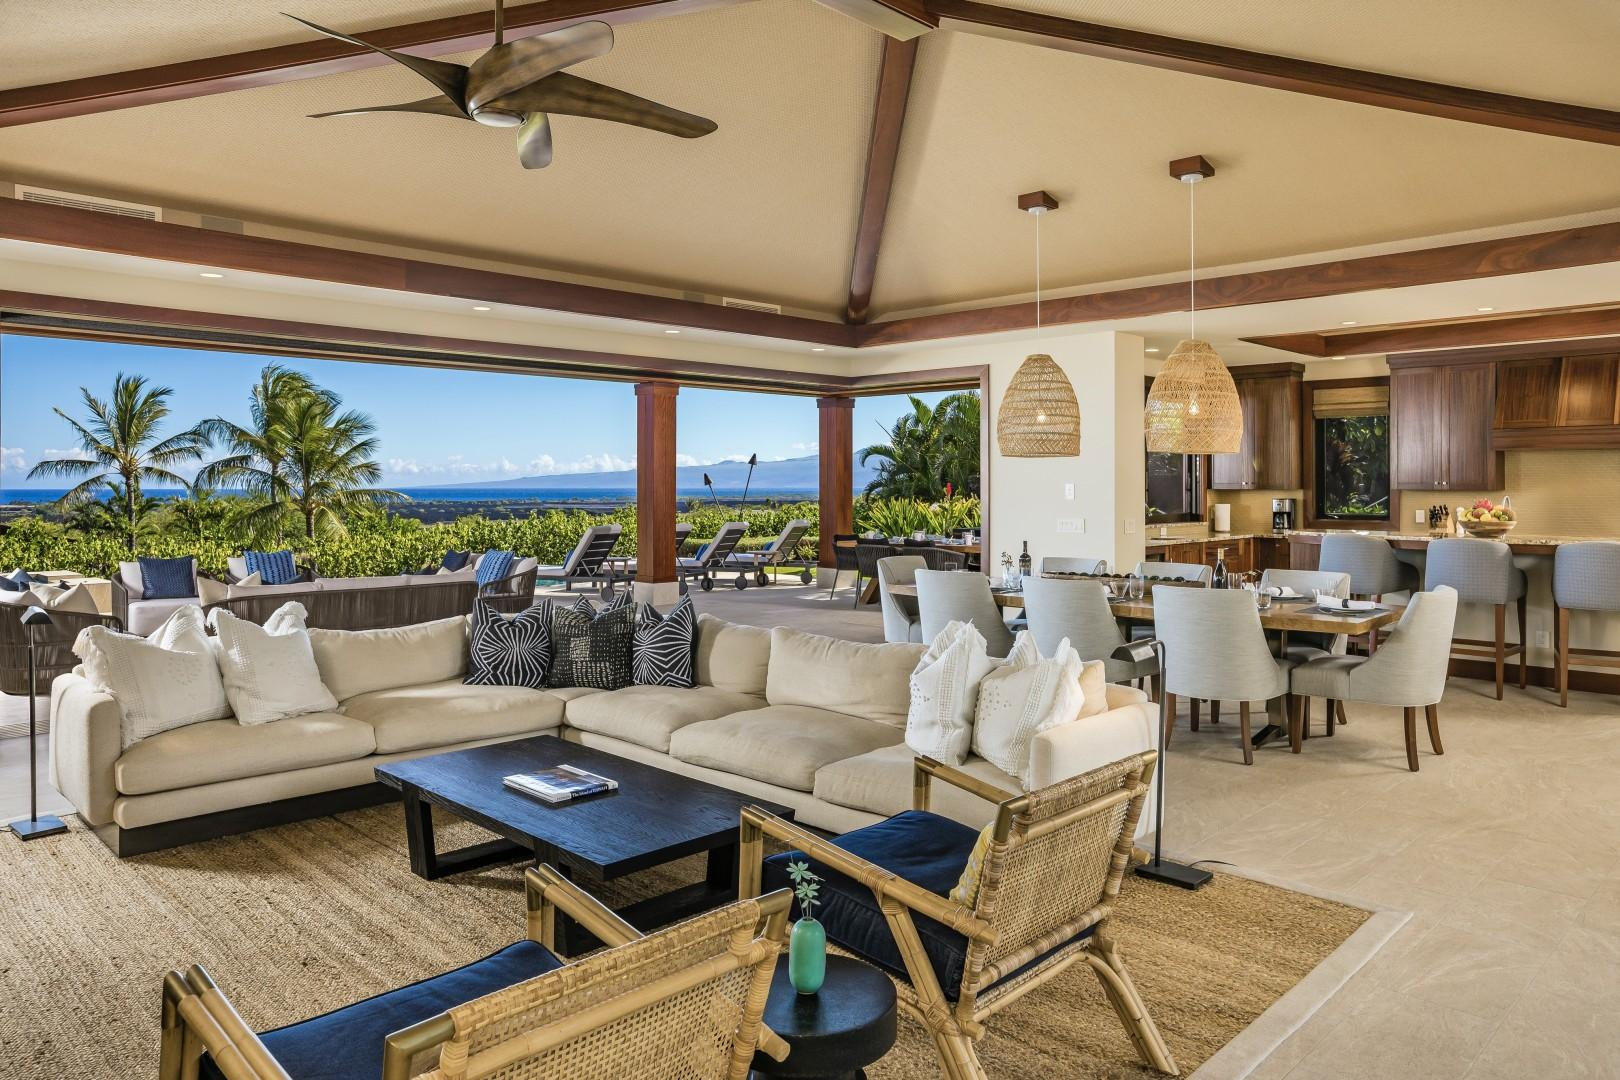 Open floor plan great room steps out to lanai, barbecue area, pool and spa through floor to ceiling pocket doors.